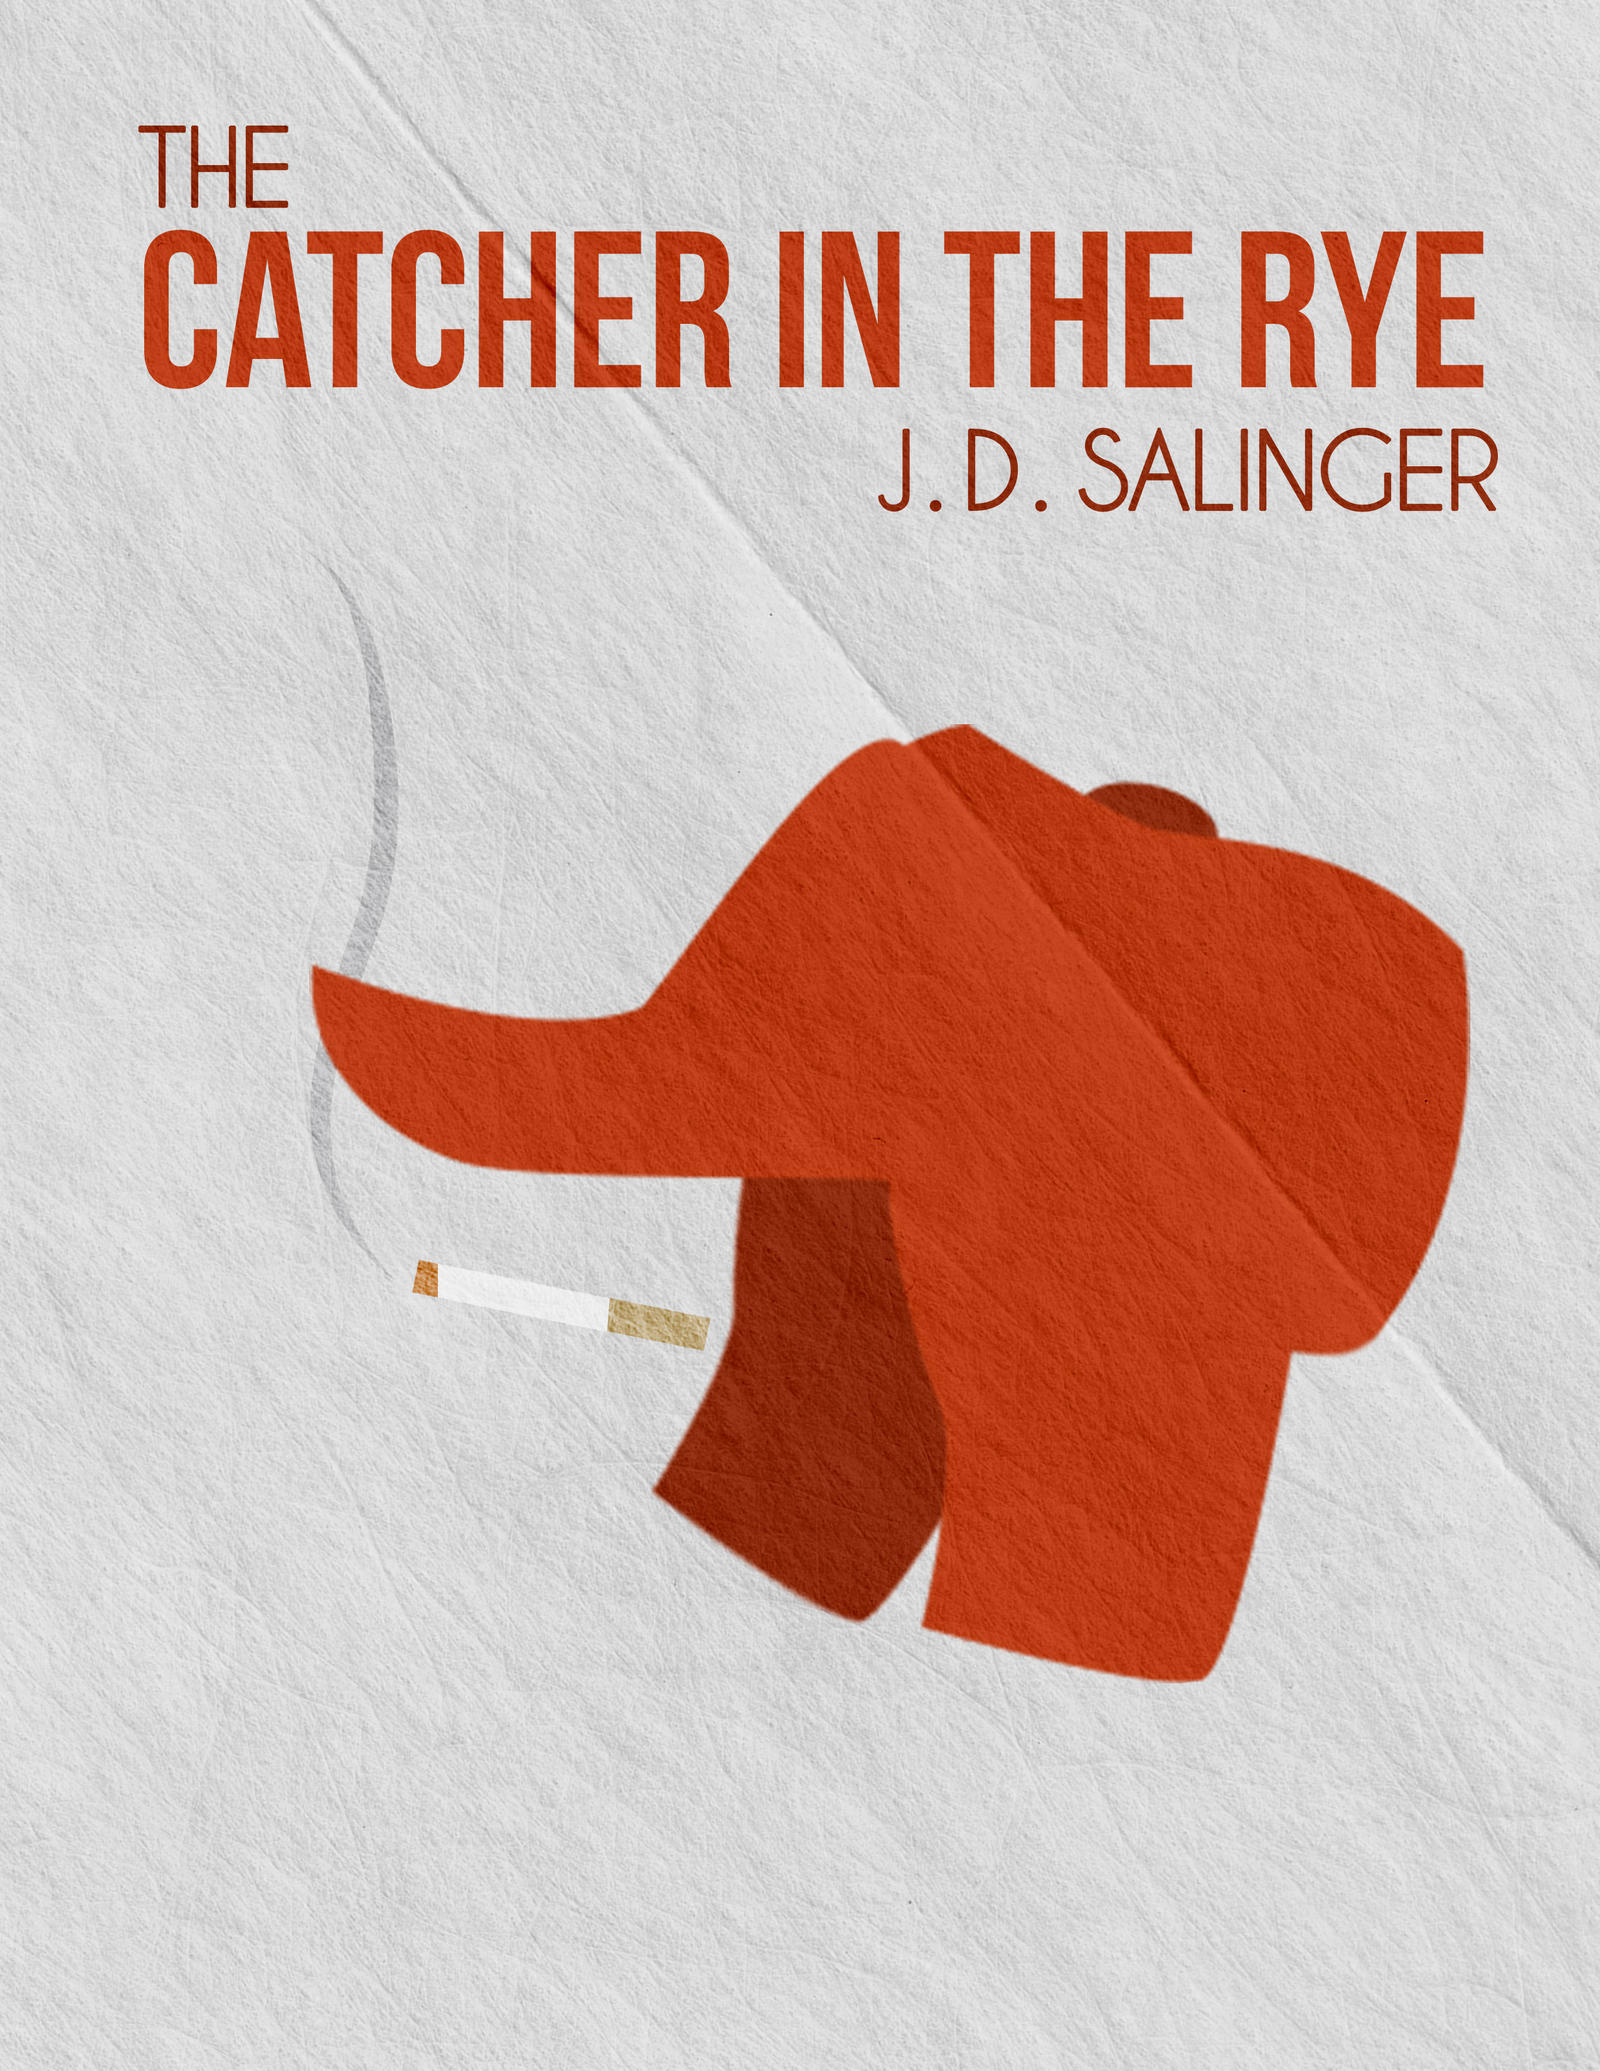 the catcher in the rye essay questions essay questions for exam  the catcher in the rye essay questions the catcher in the rye catcher in the rye